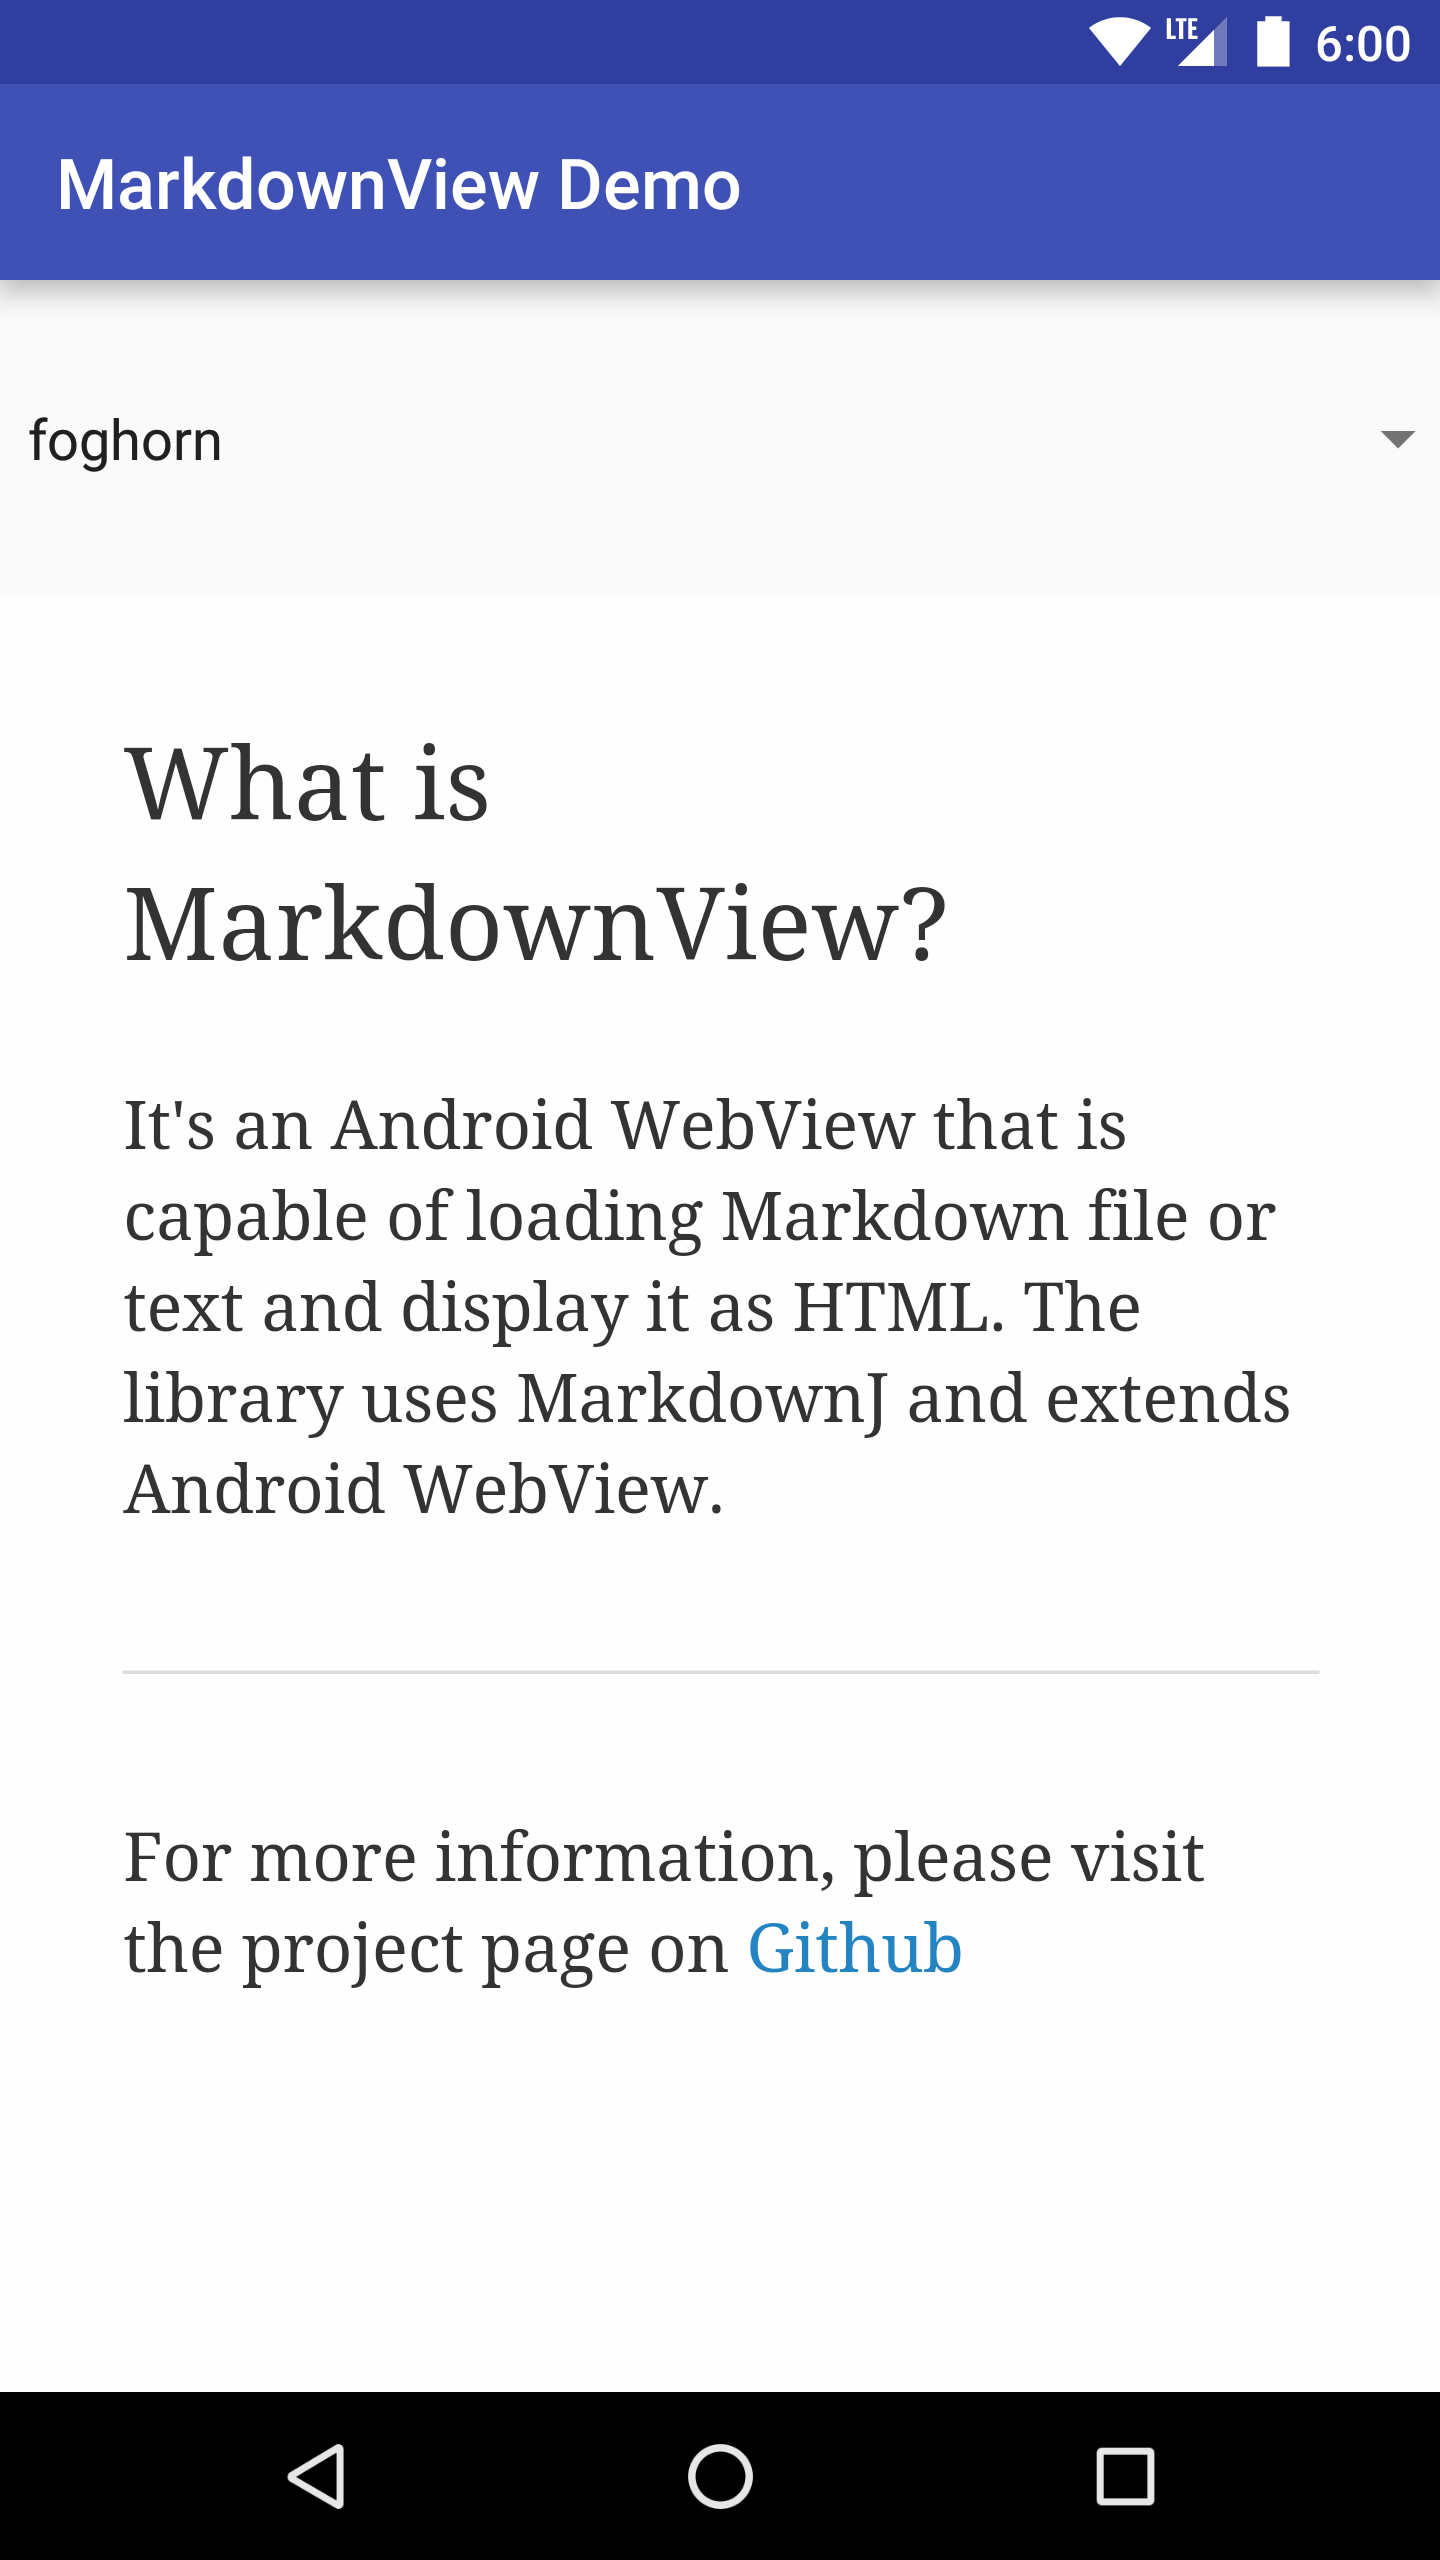 GitHub - falnatsheh/MarkdownView: MarkdownView is an Android